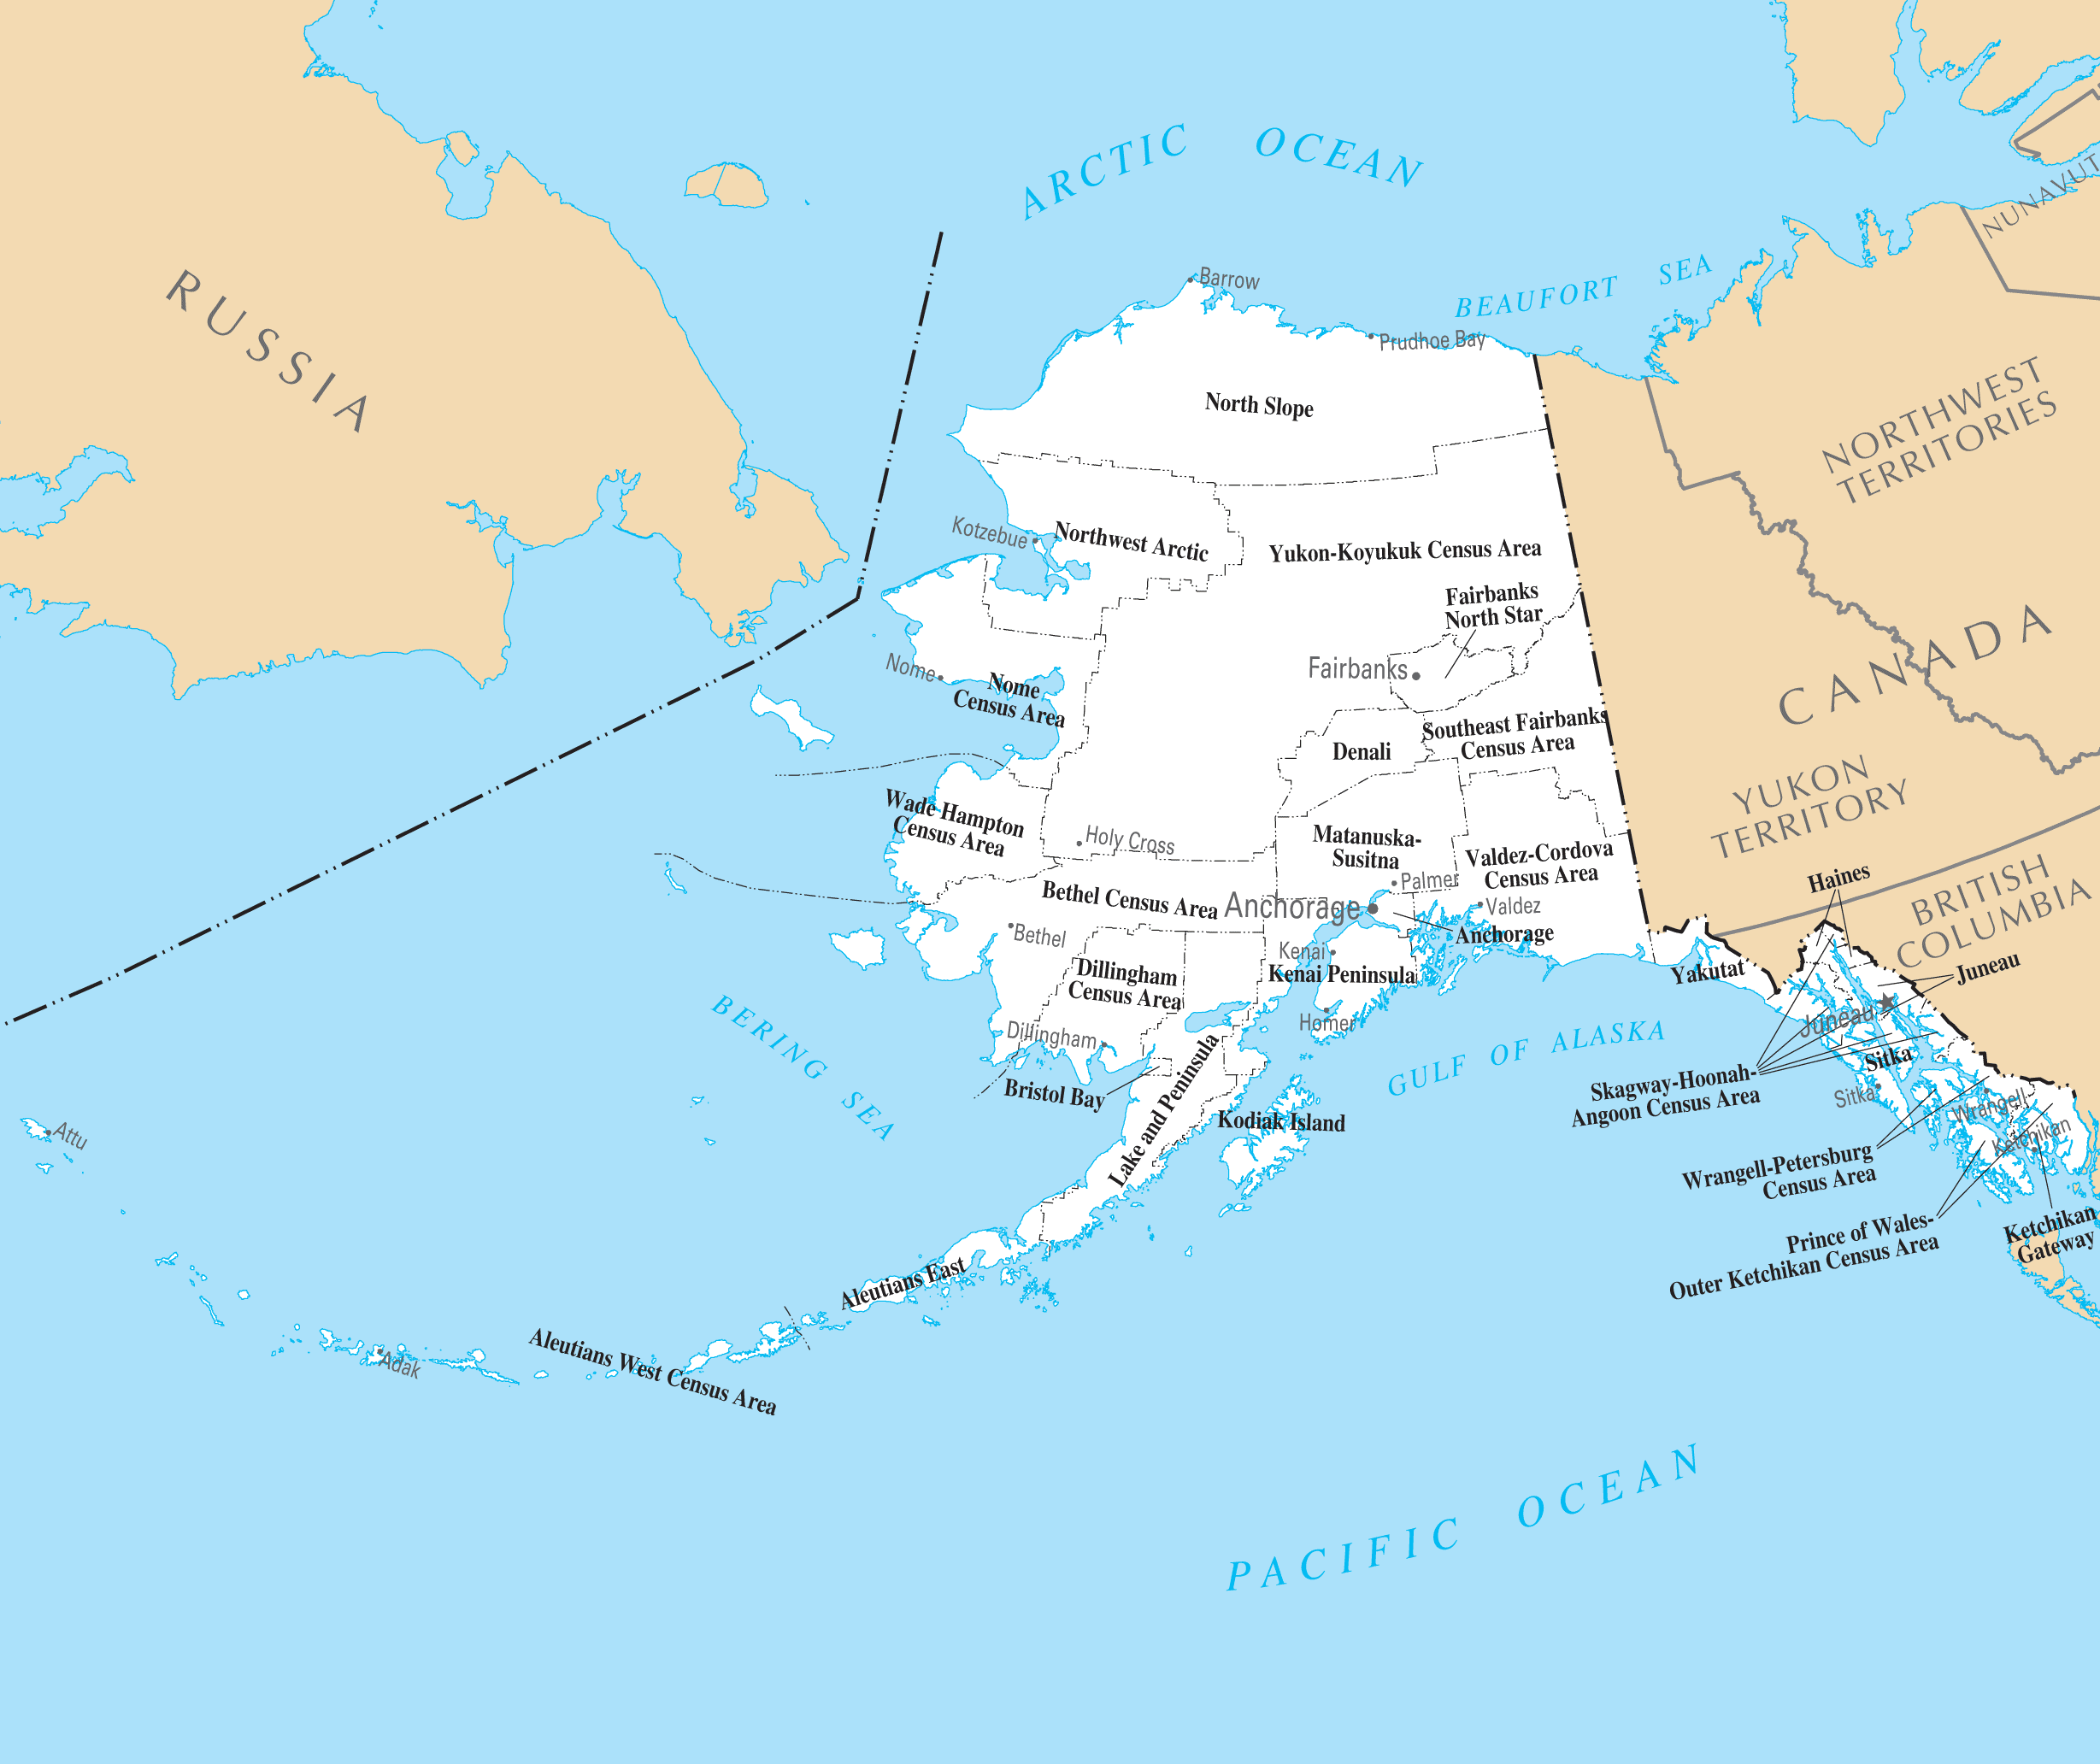 Alaska Counties And Cities Mapsofnet - Alaska county map